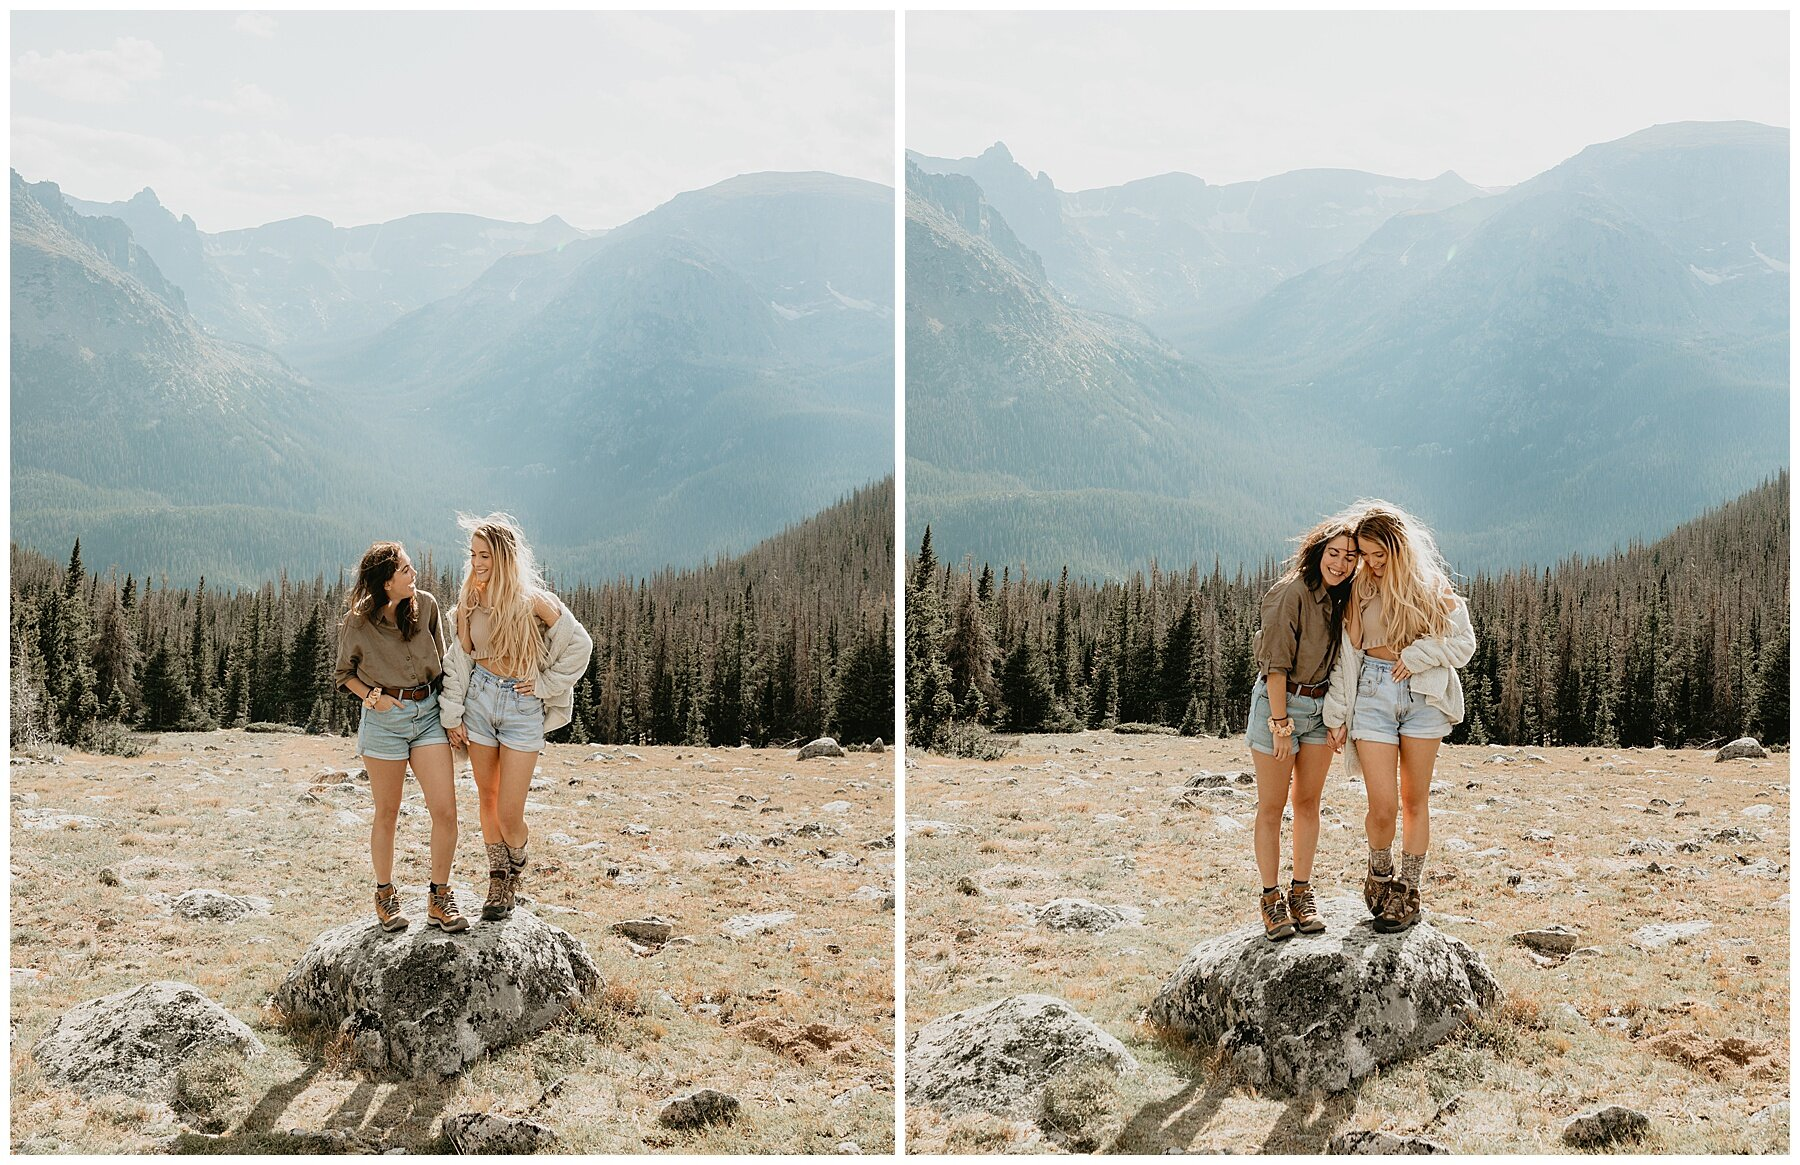 """I dedicate this blog to my """"Irish twin"""" (I'm older by just 11 months) and my soon to be brother-in-law. To you guys, I wish all the happiness and love. May your love together stretch from the bottom of the sea to the summit of the highest mountain."""